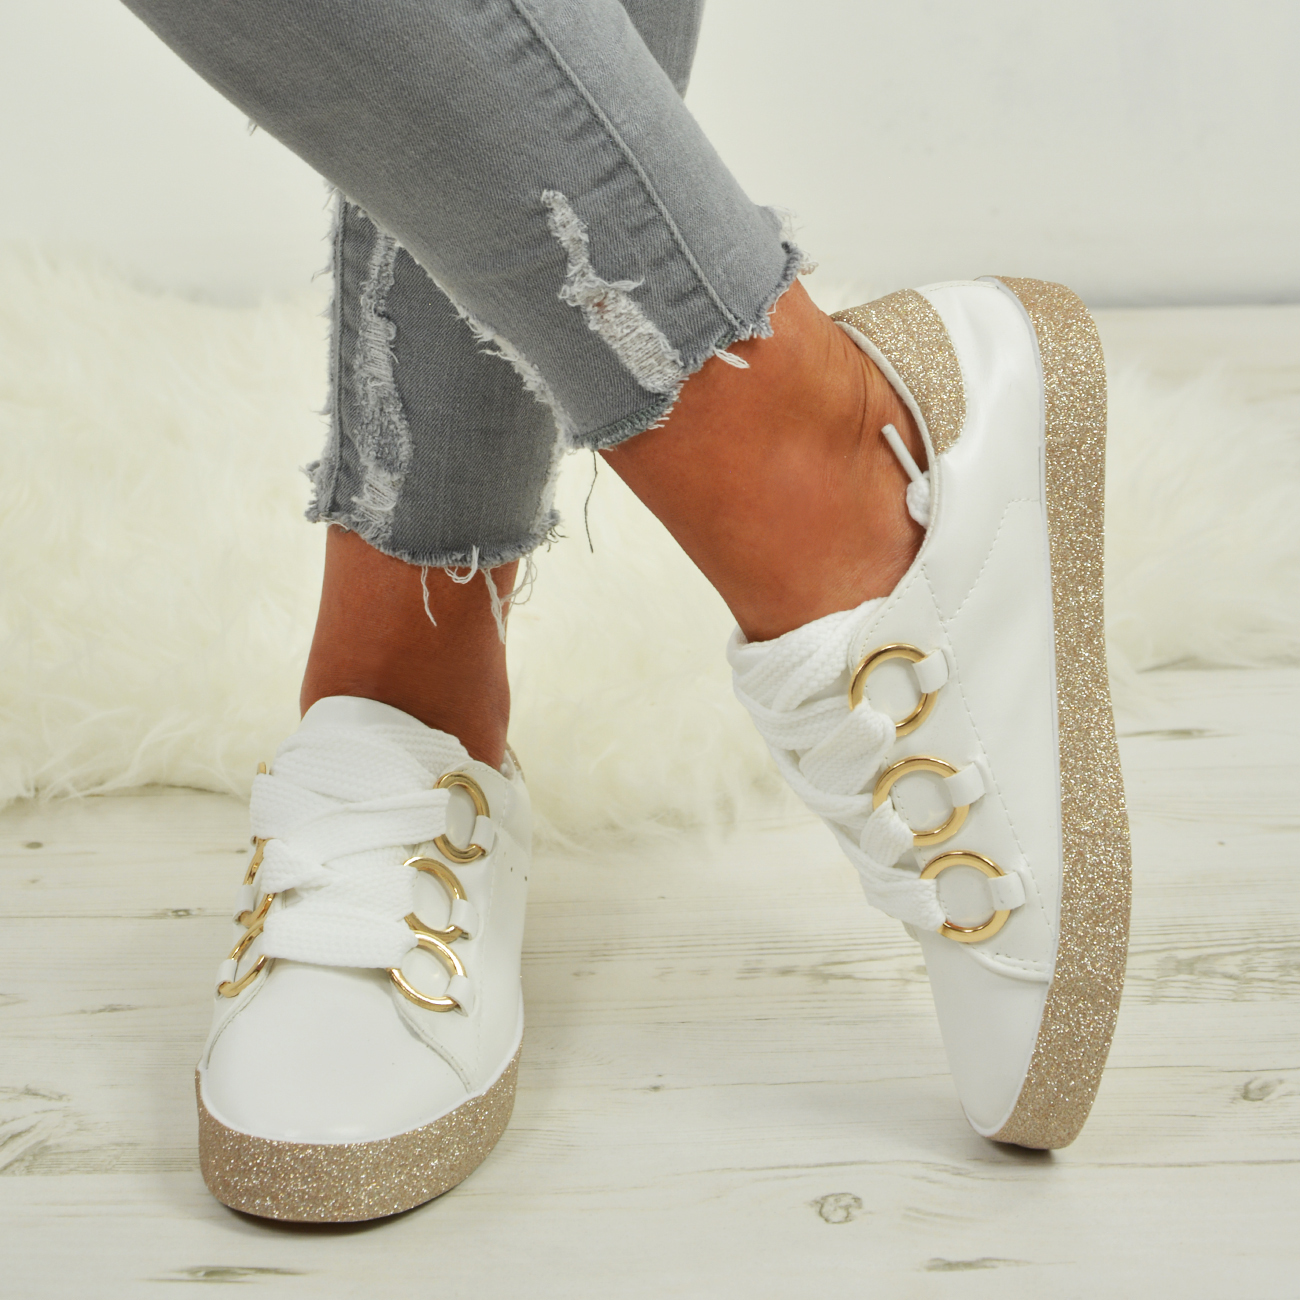 LADIES-WOMENS-GLITTER-SNEAKERS-SPARKLE-TRAINERS-LACE-UP-PLIMSOLL-PUMPS-SHOES thumbnail 17